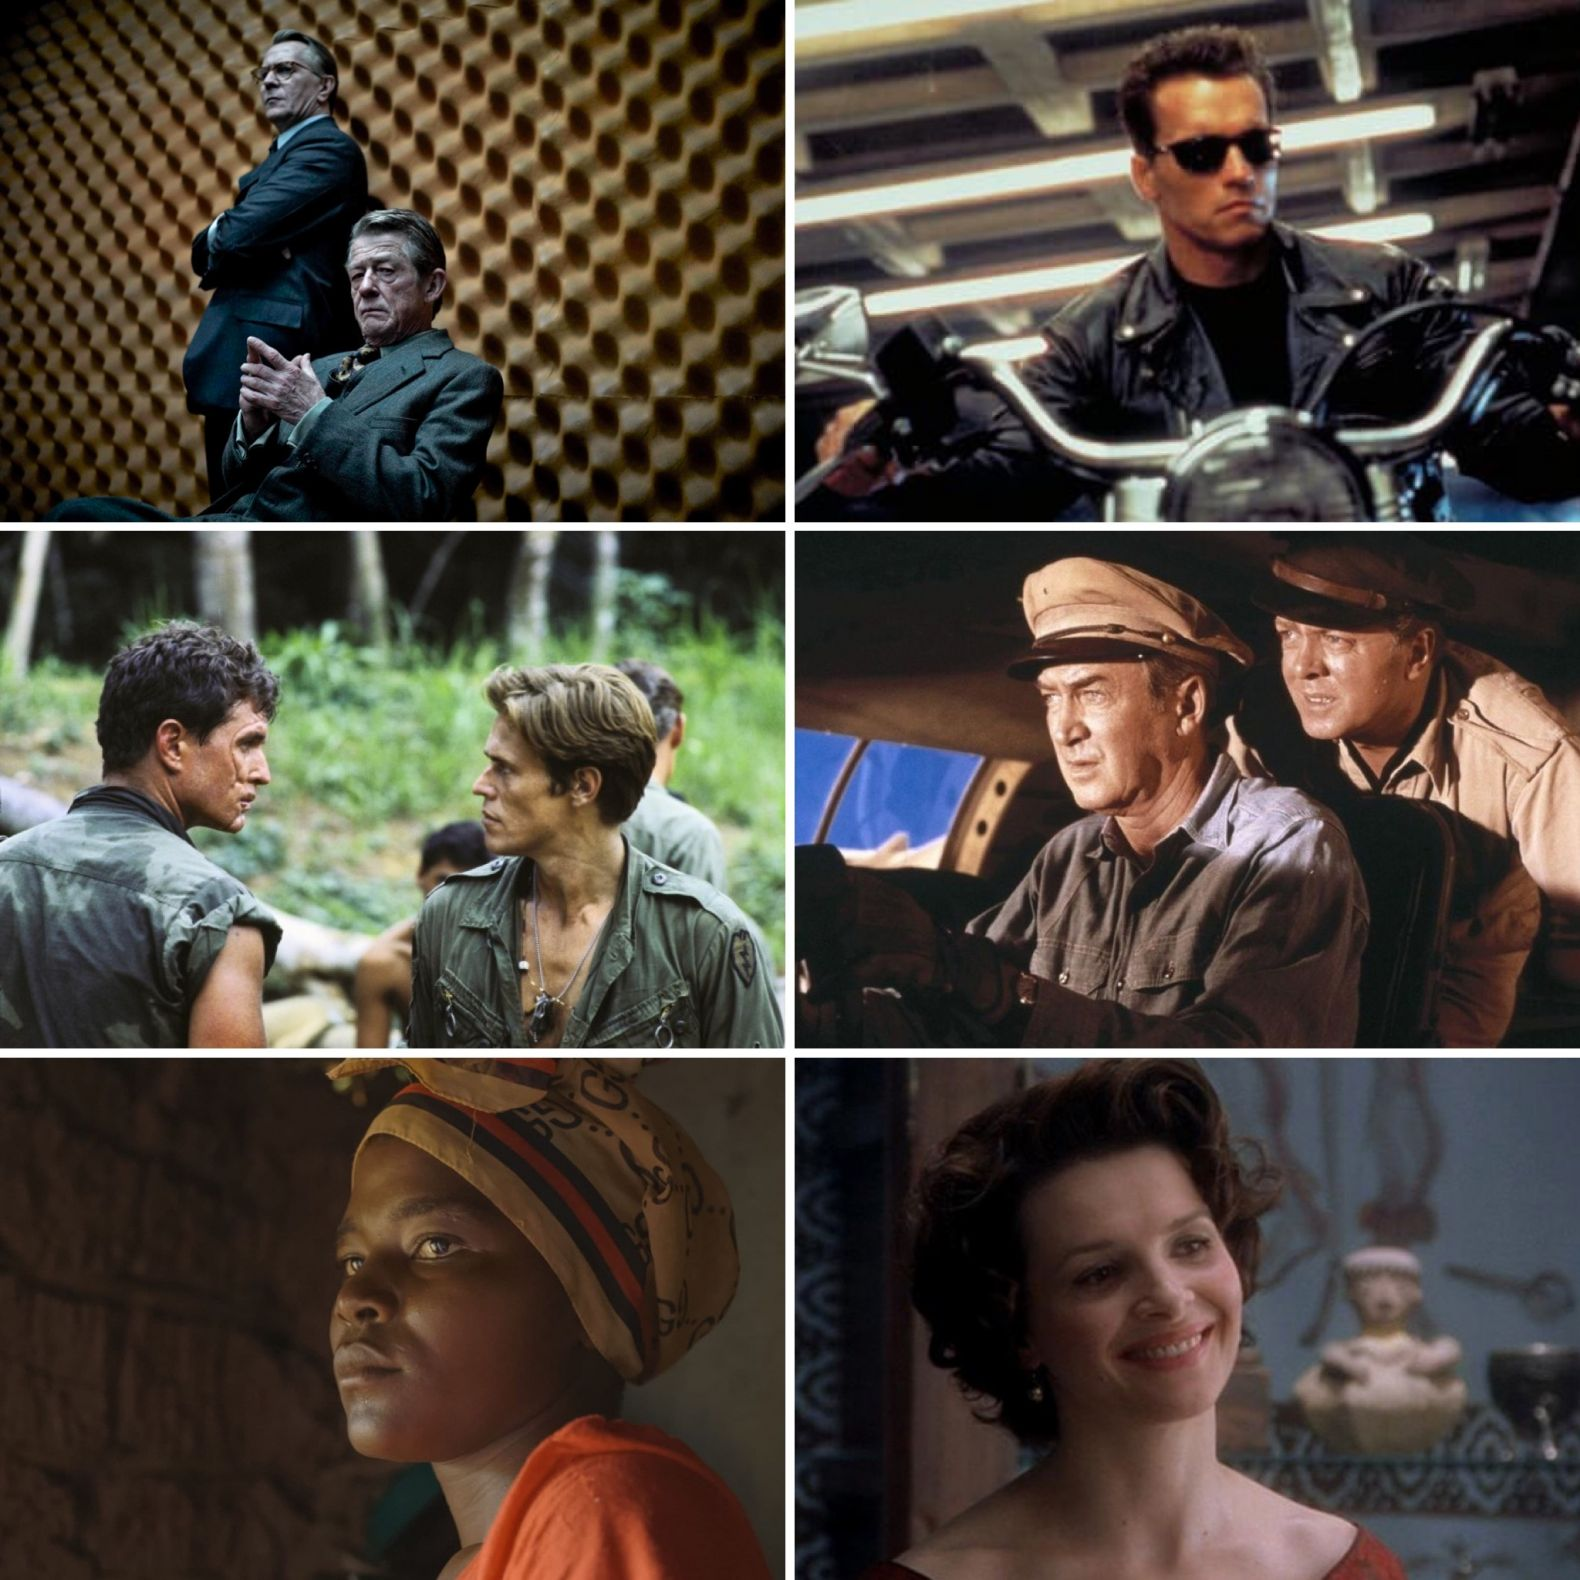 Duke Box #24: Our Guide to the Best Films on TV